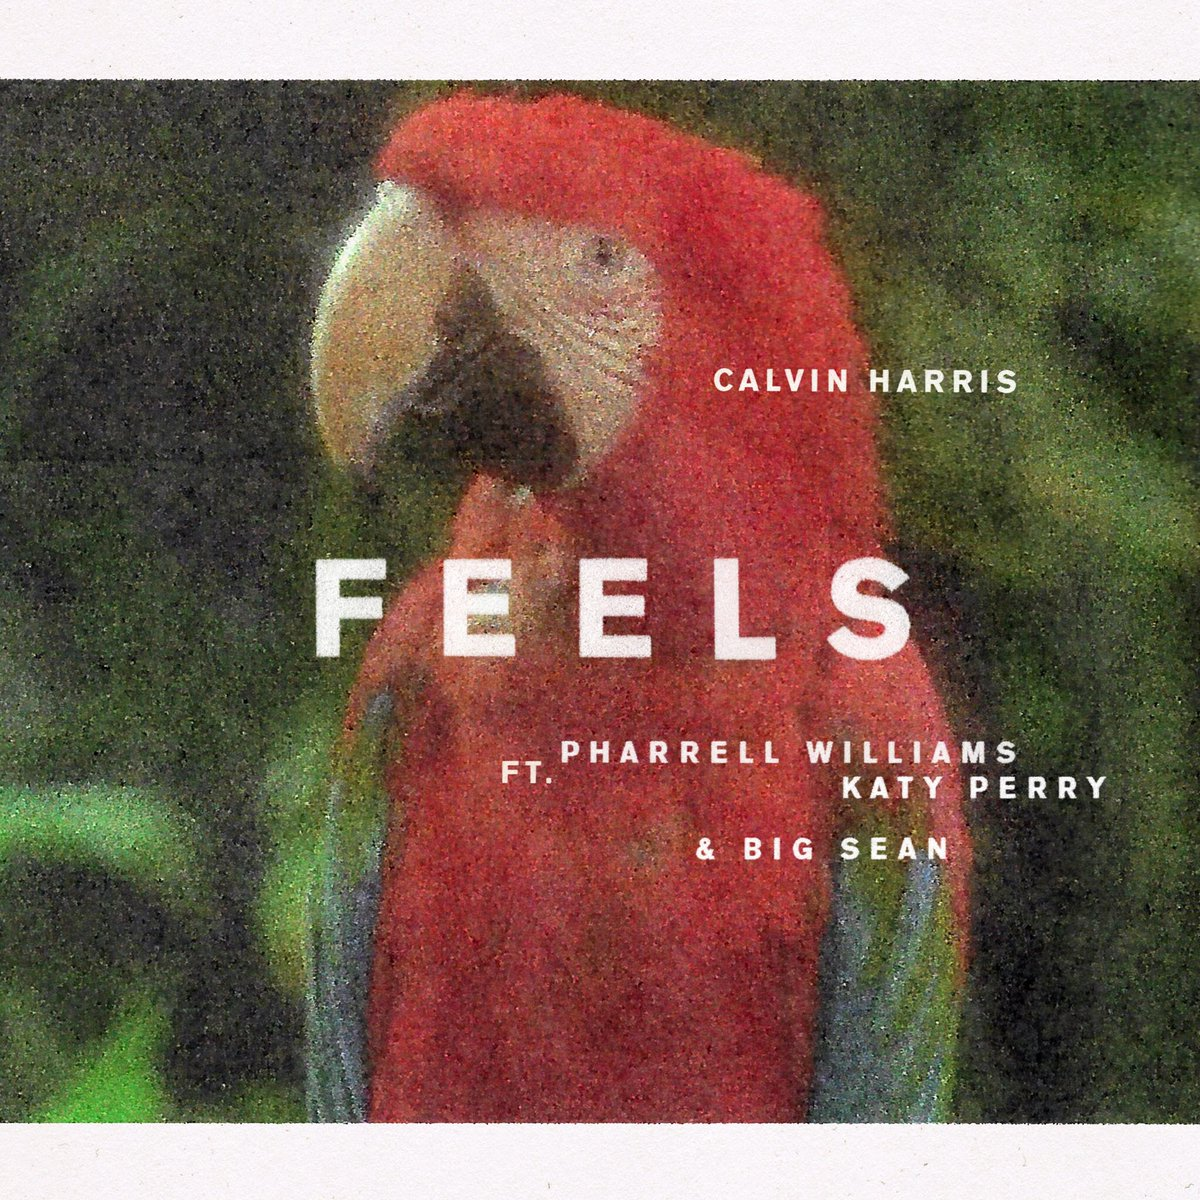 CALVIN HARRIS FT. PHARRELL WILLIAMS, KATY PERRY & BIG SEAN-Feels